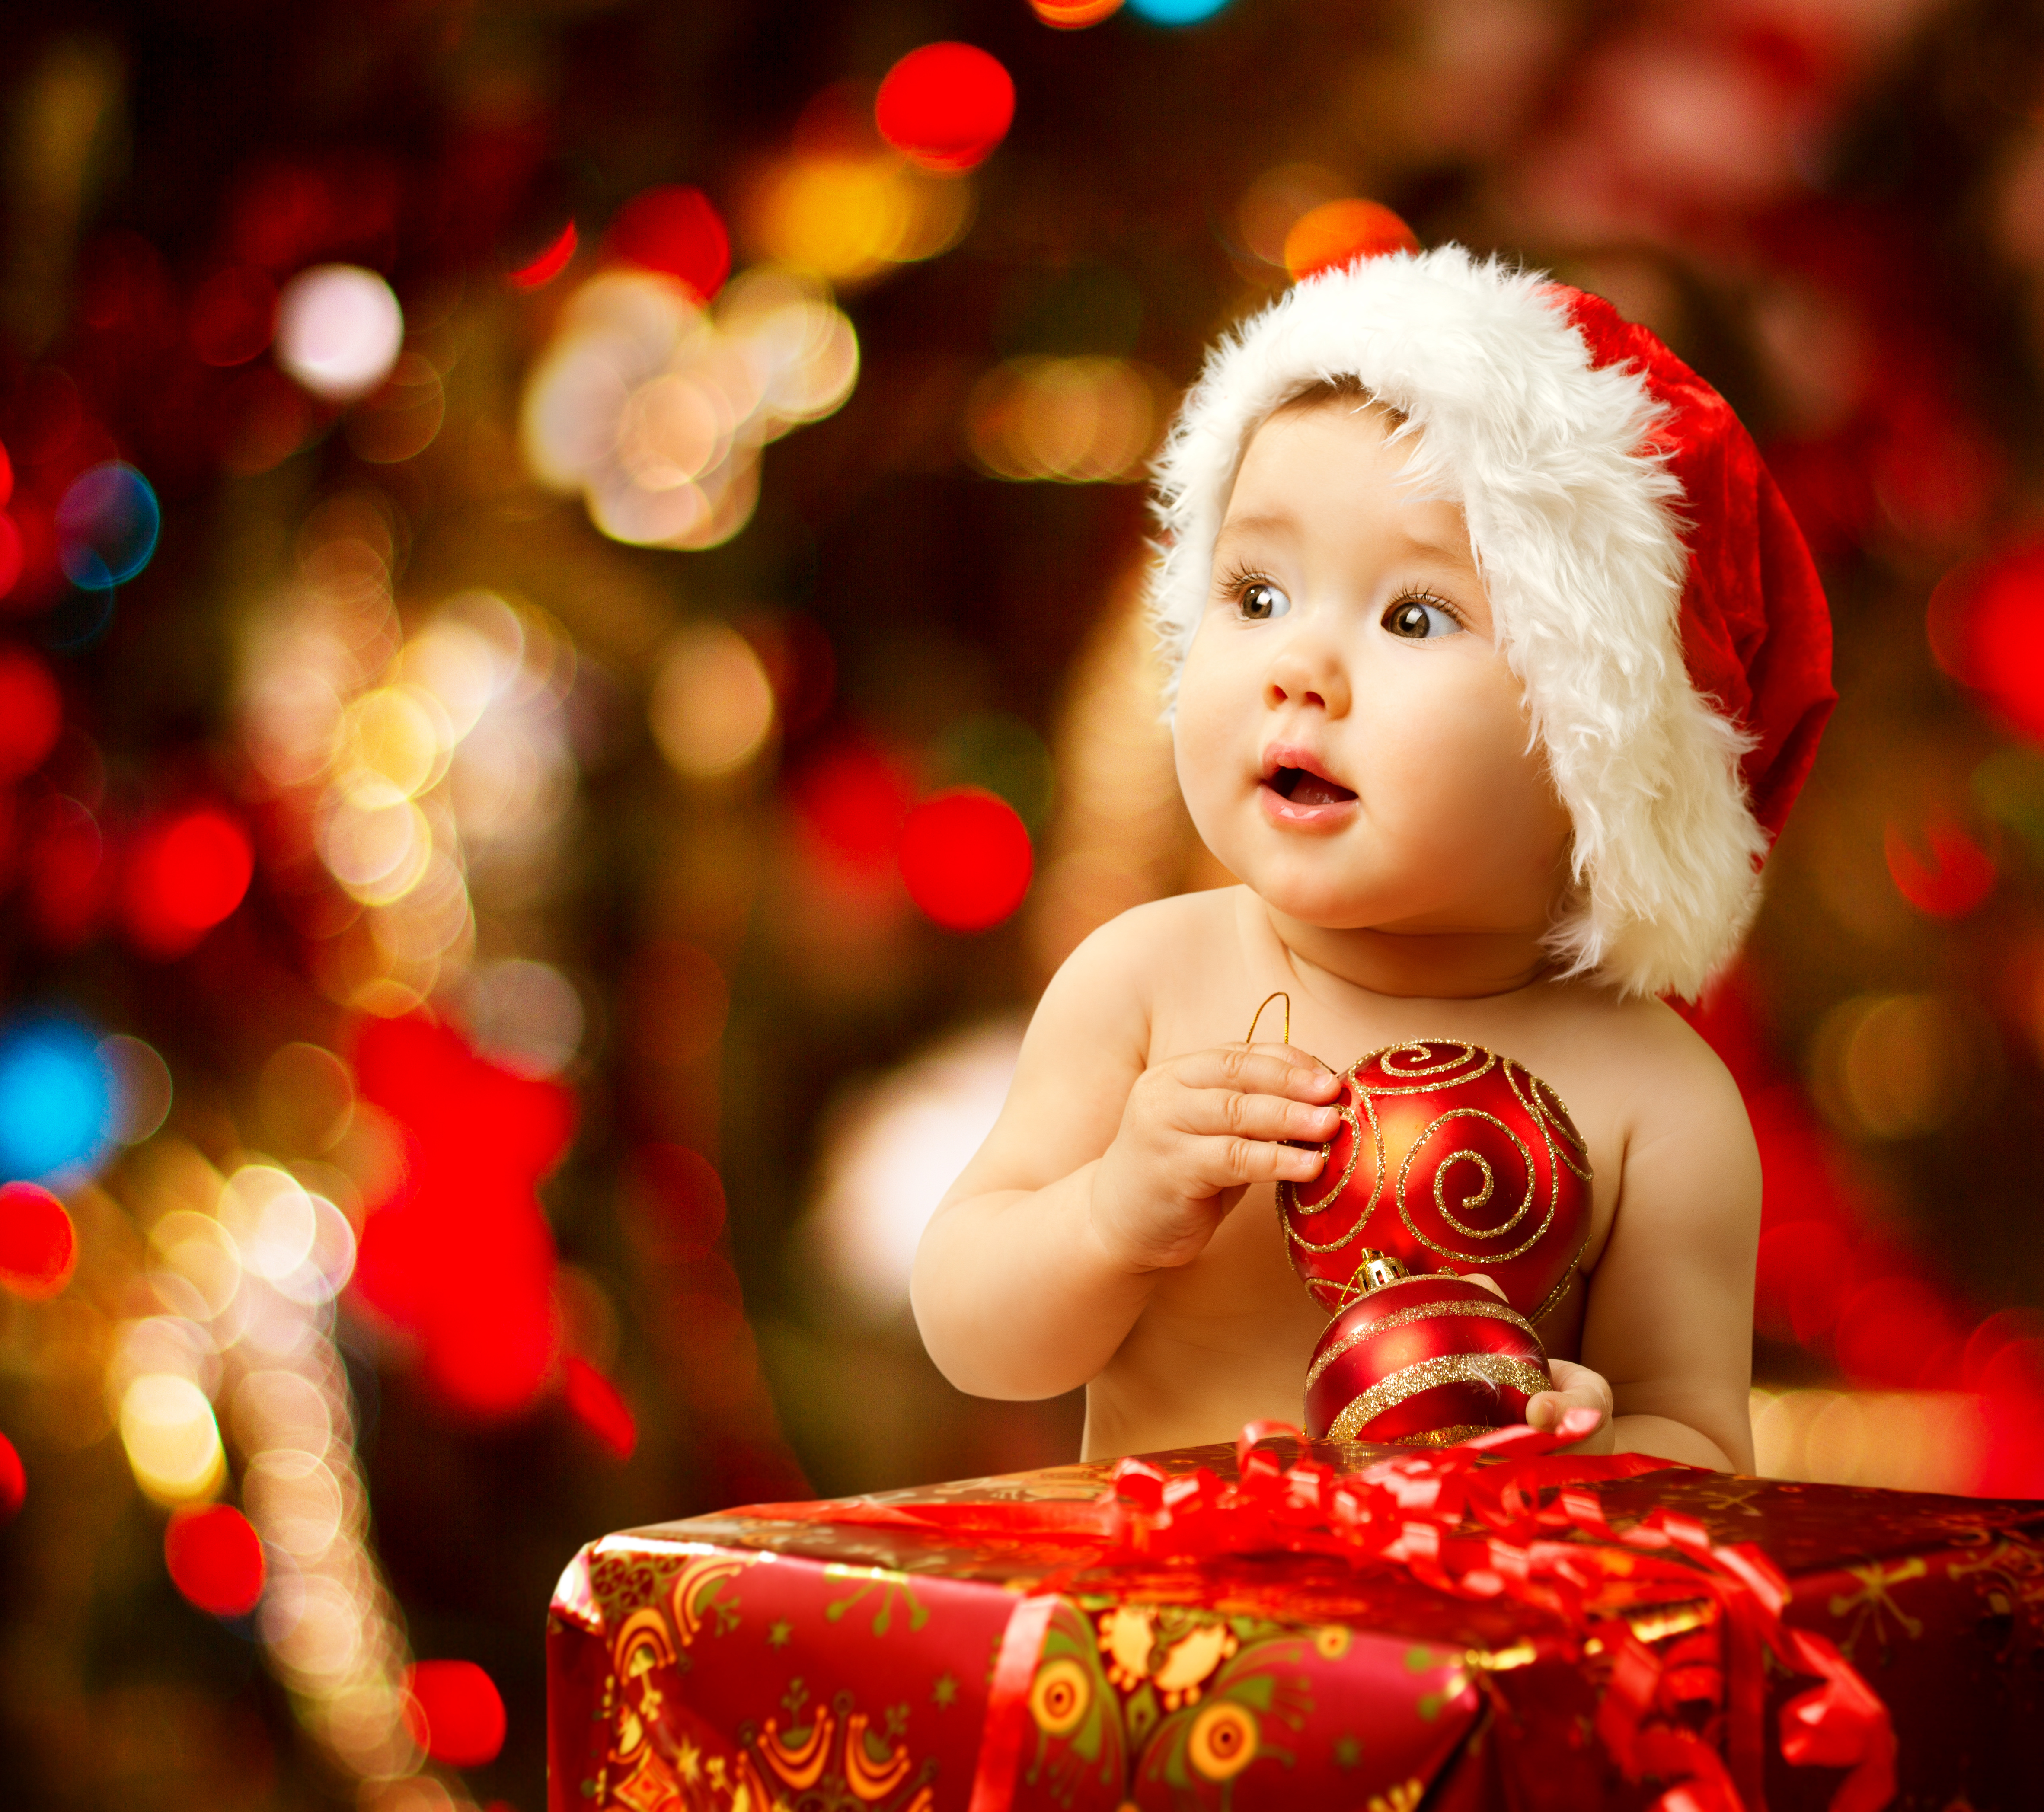 Christmas Baby Images Hd.Holiday Safety